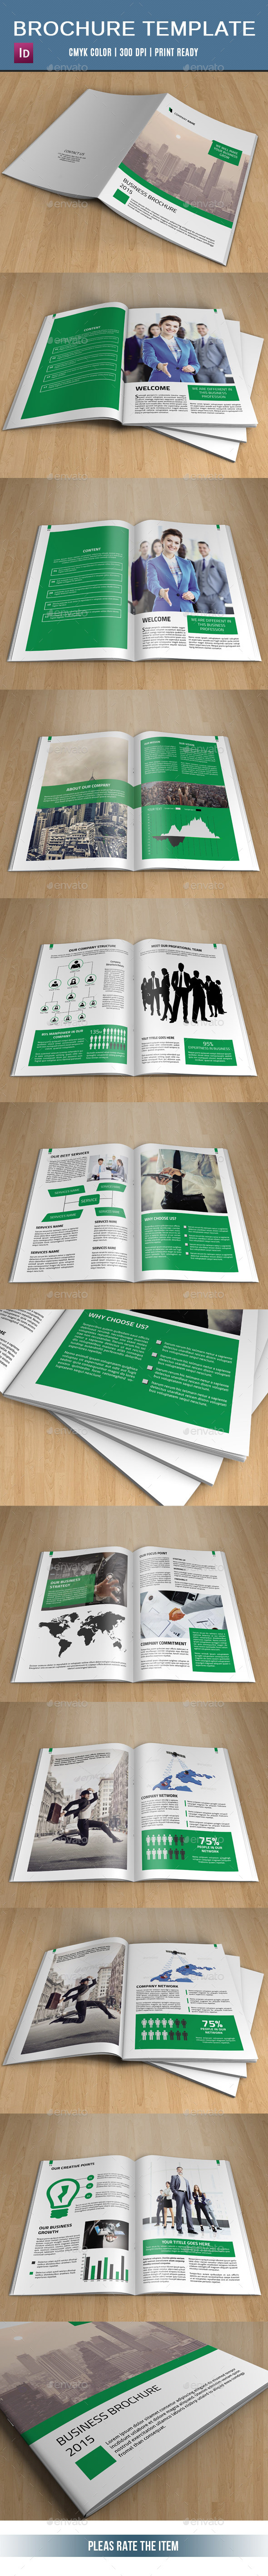 GraphicRiver Corporate Brochure Template-V231 10937806